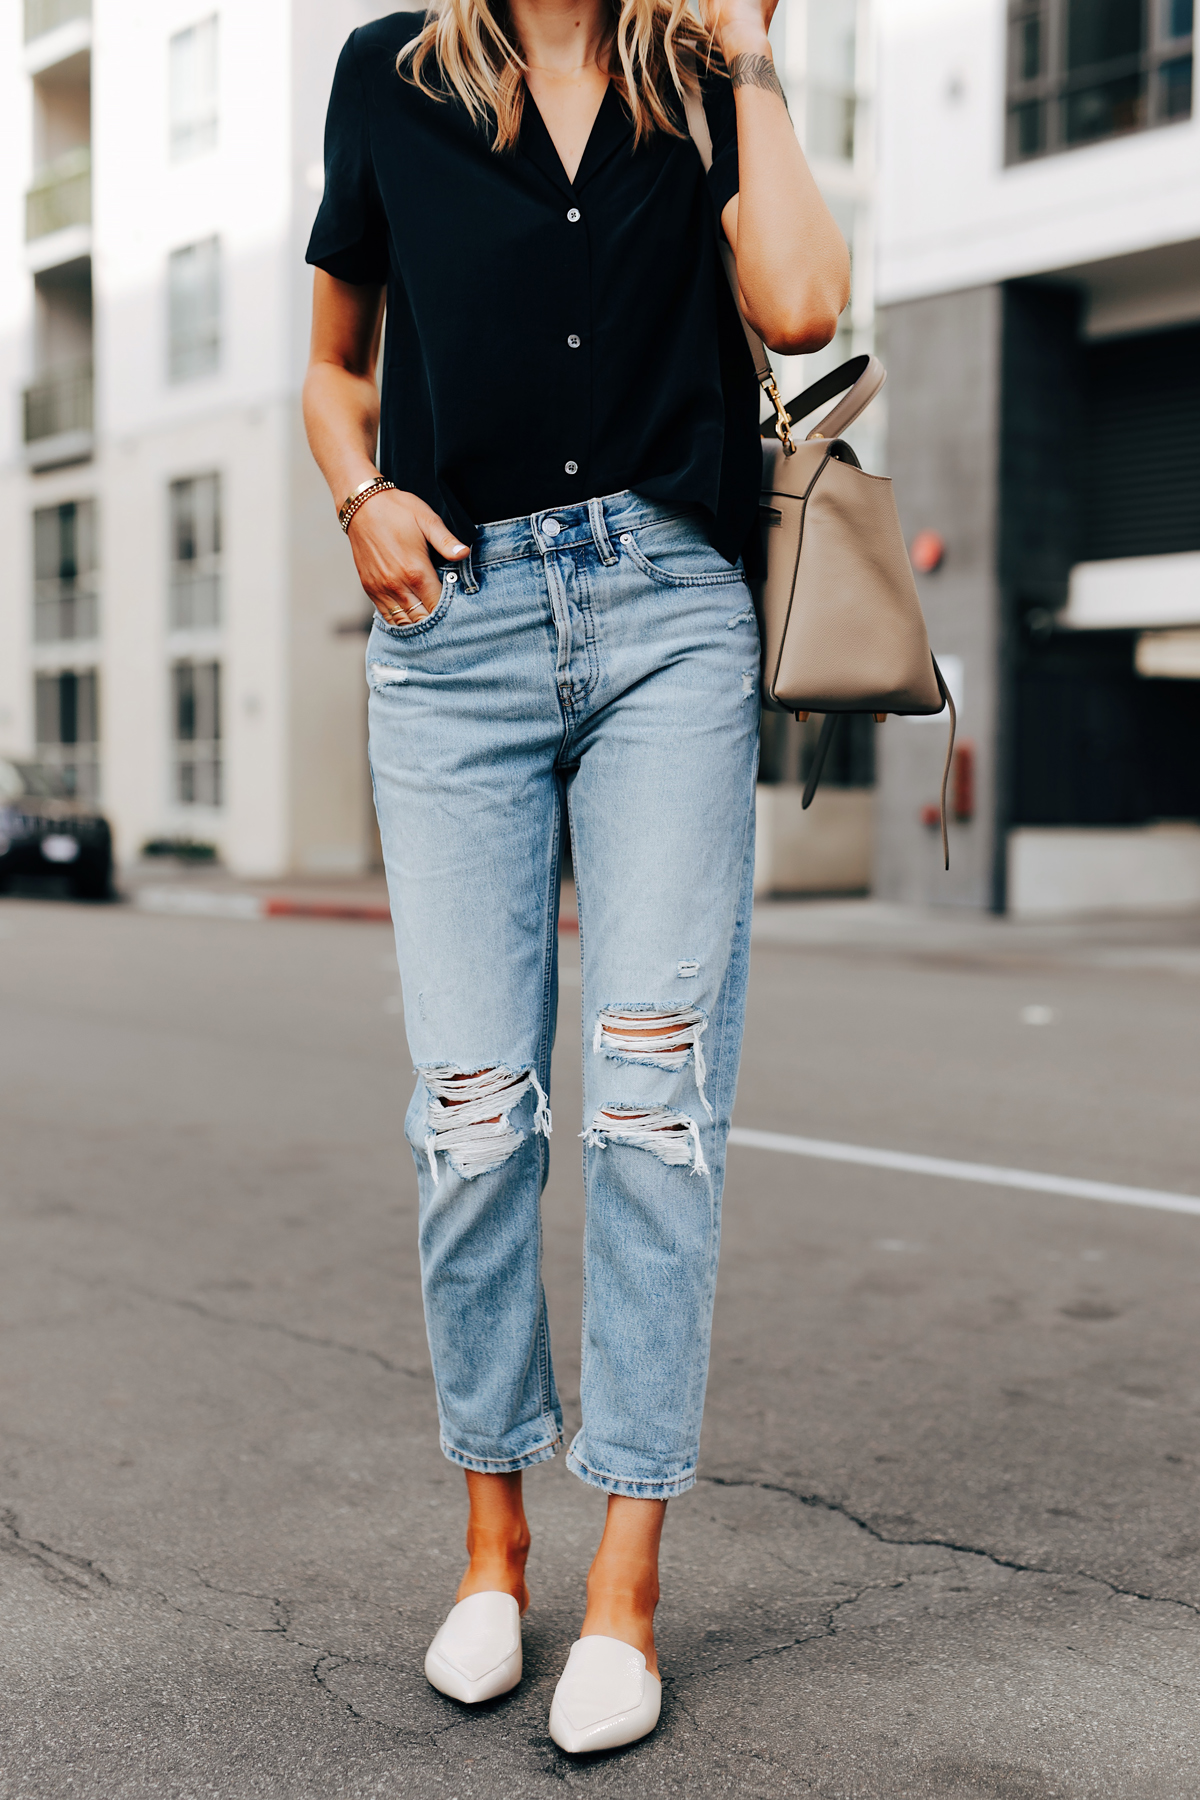 Fashion Jackson Wearing Everlane Short Sleeve Black Top Everlane Ripped Boyfriend Jeans White Mules